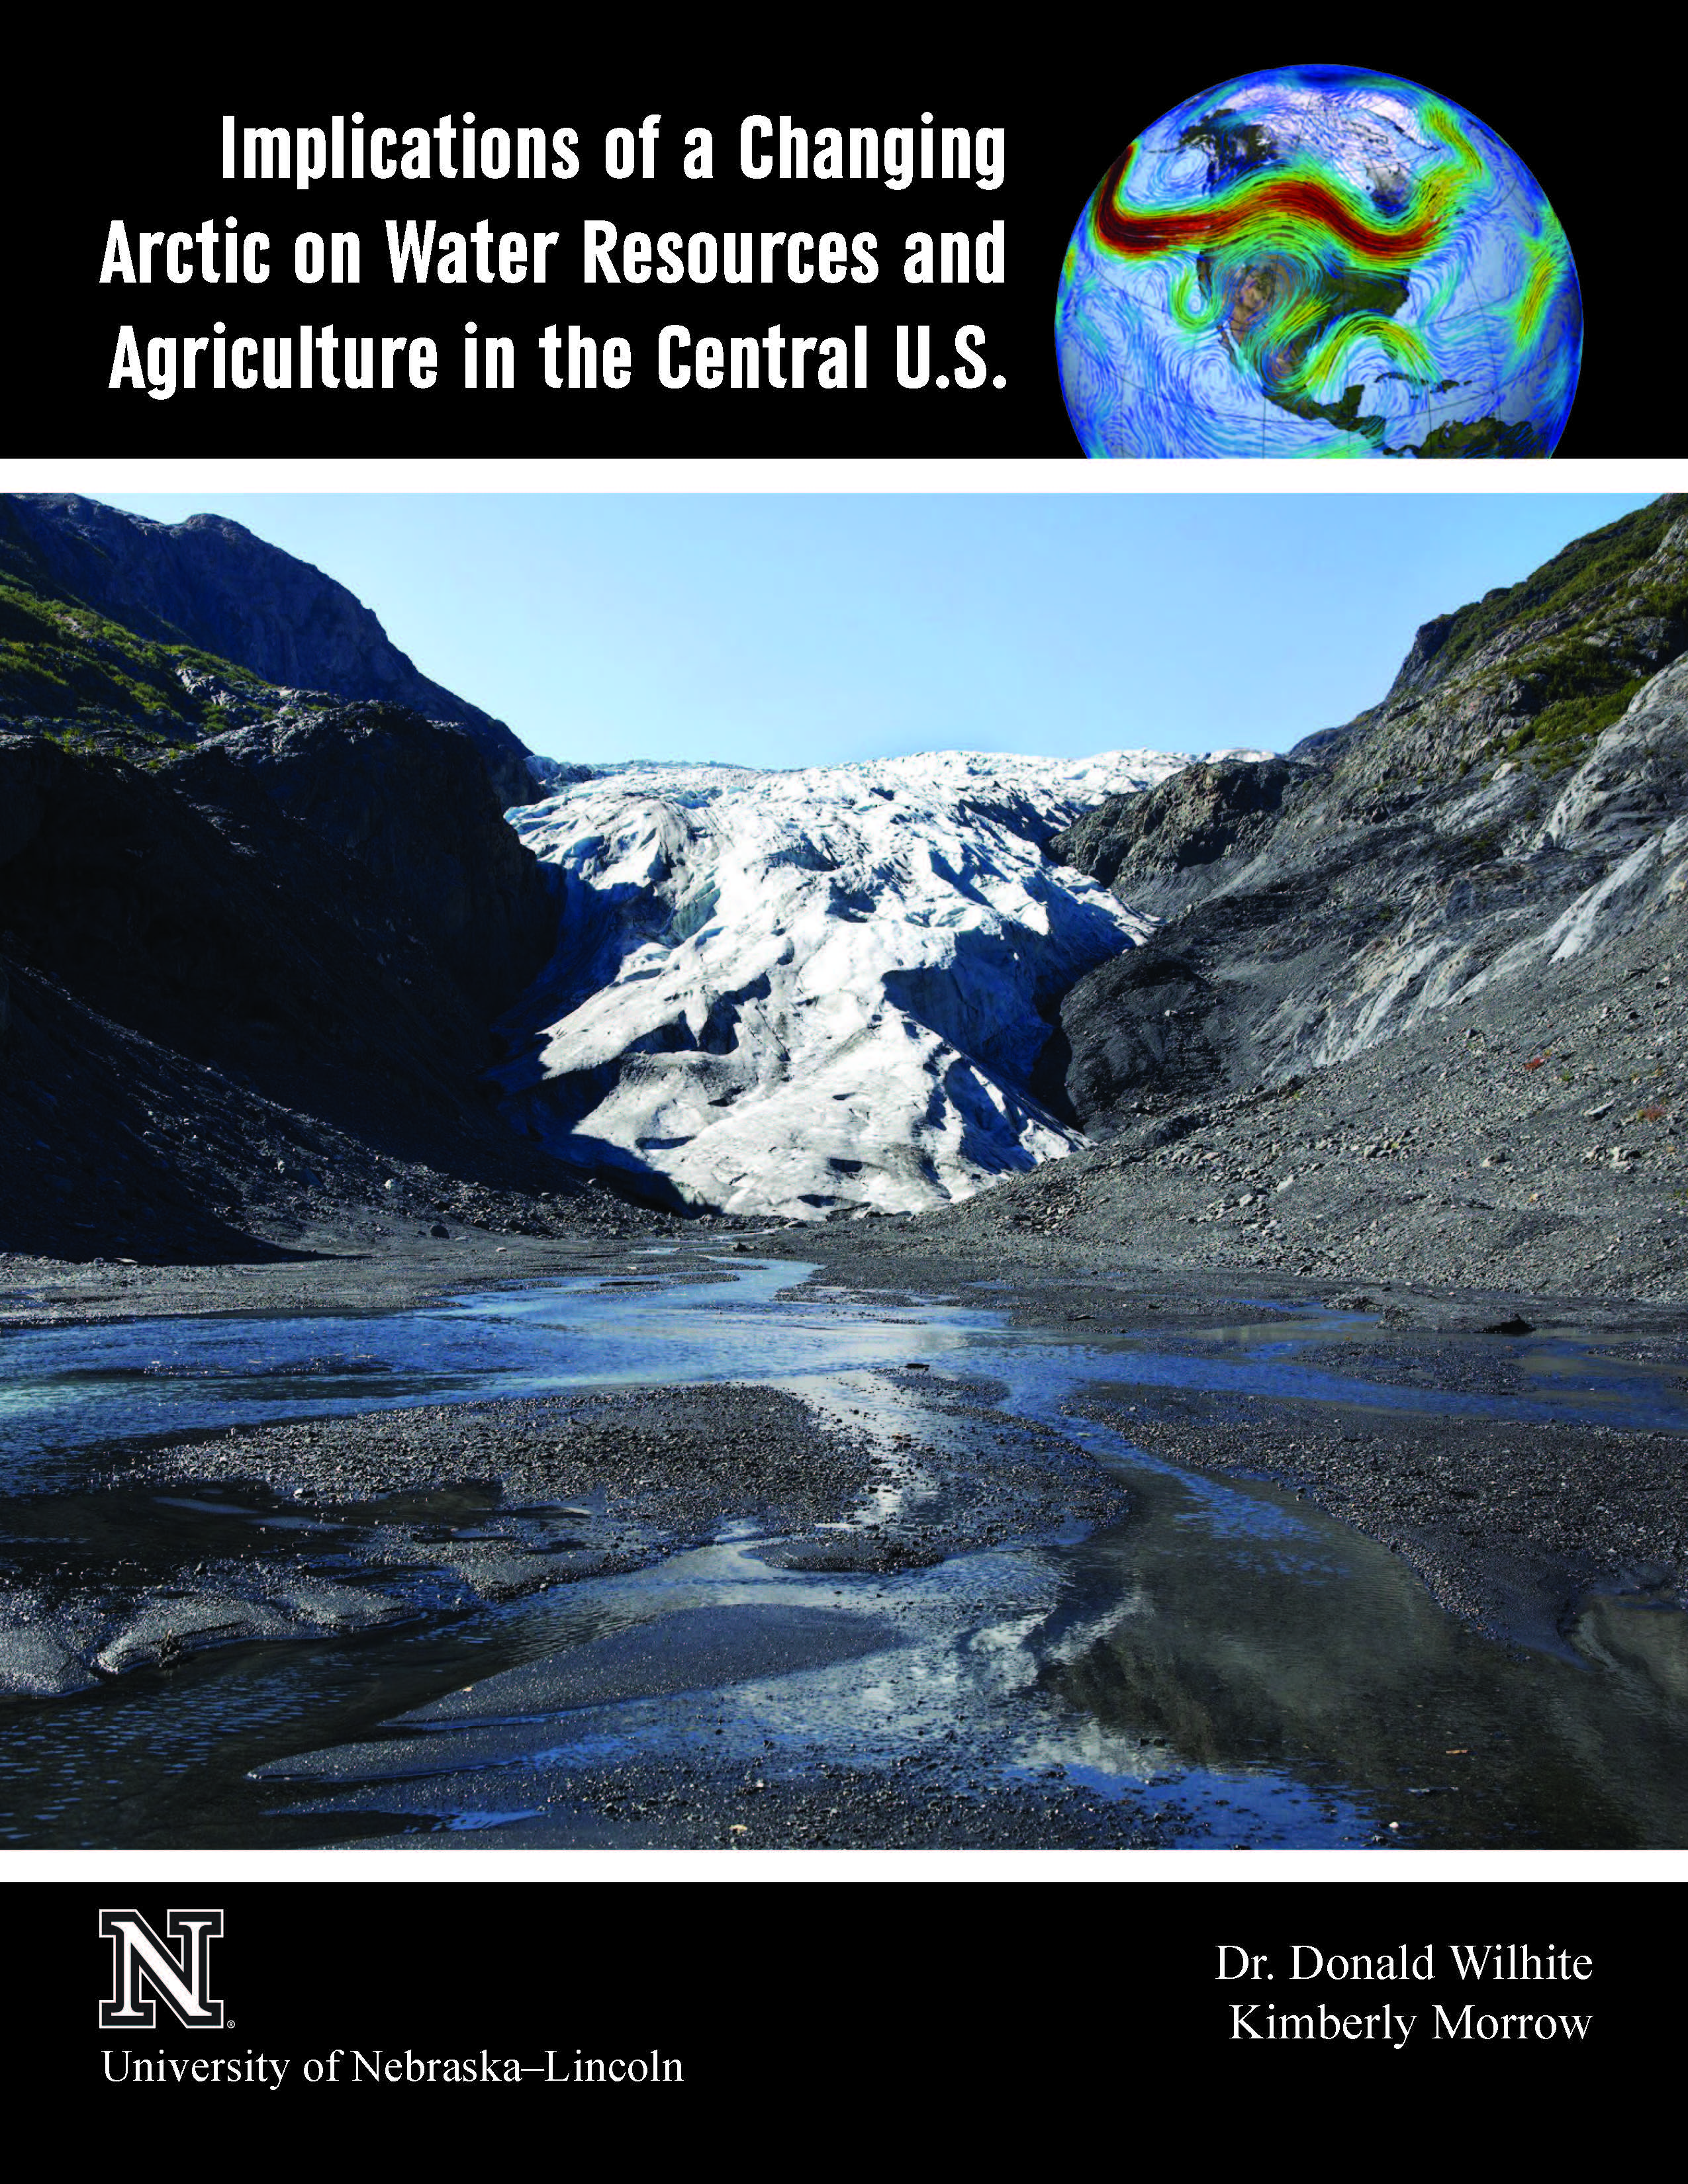 New Report Details Impact of Changing Arctic on Central U.S. Agriculture and Water Resources